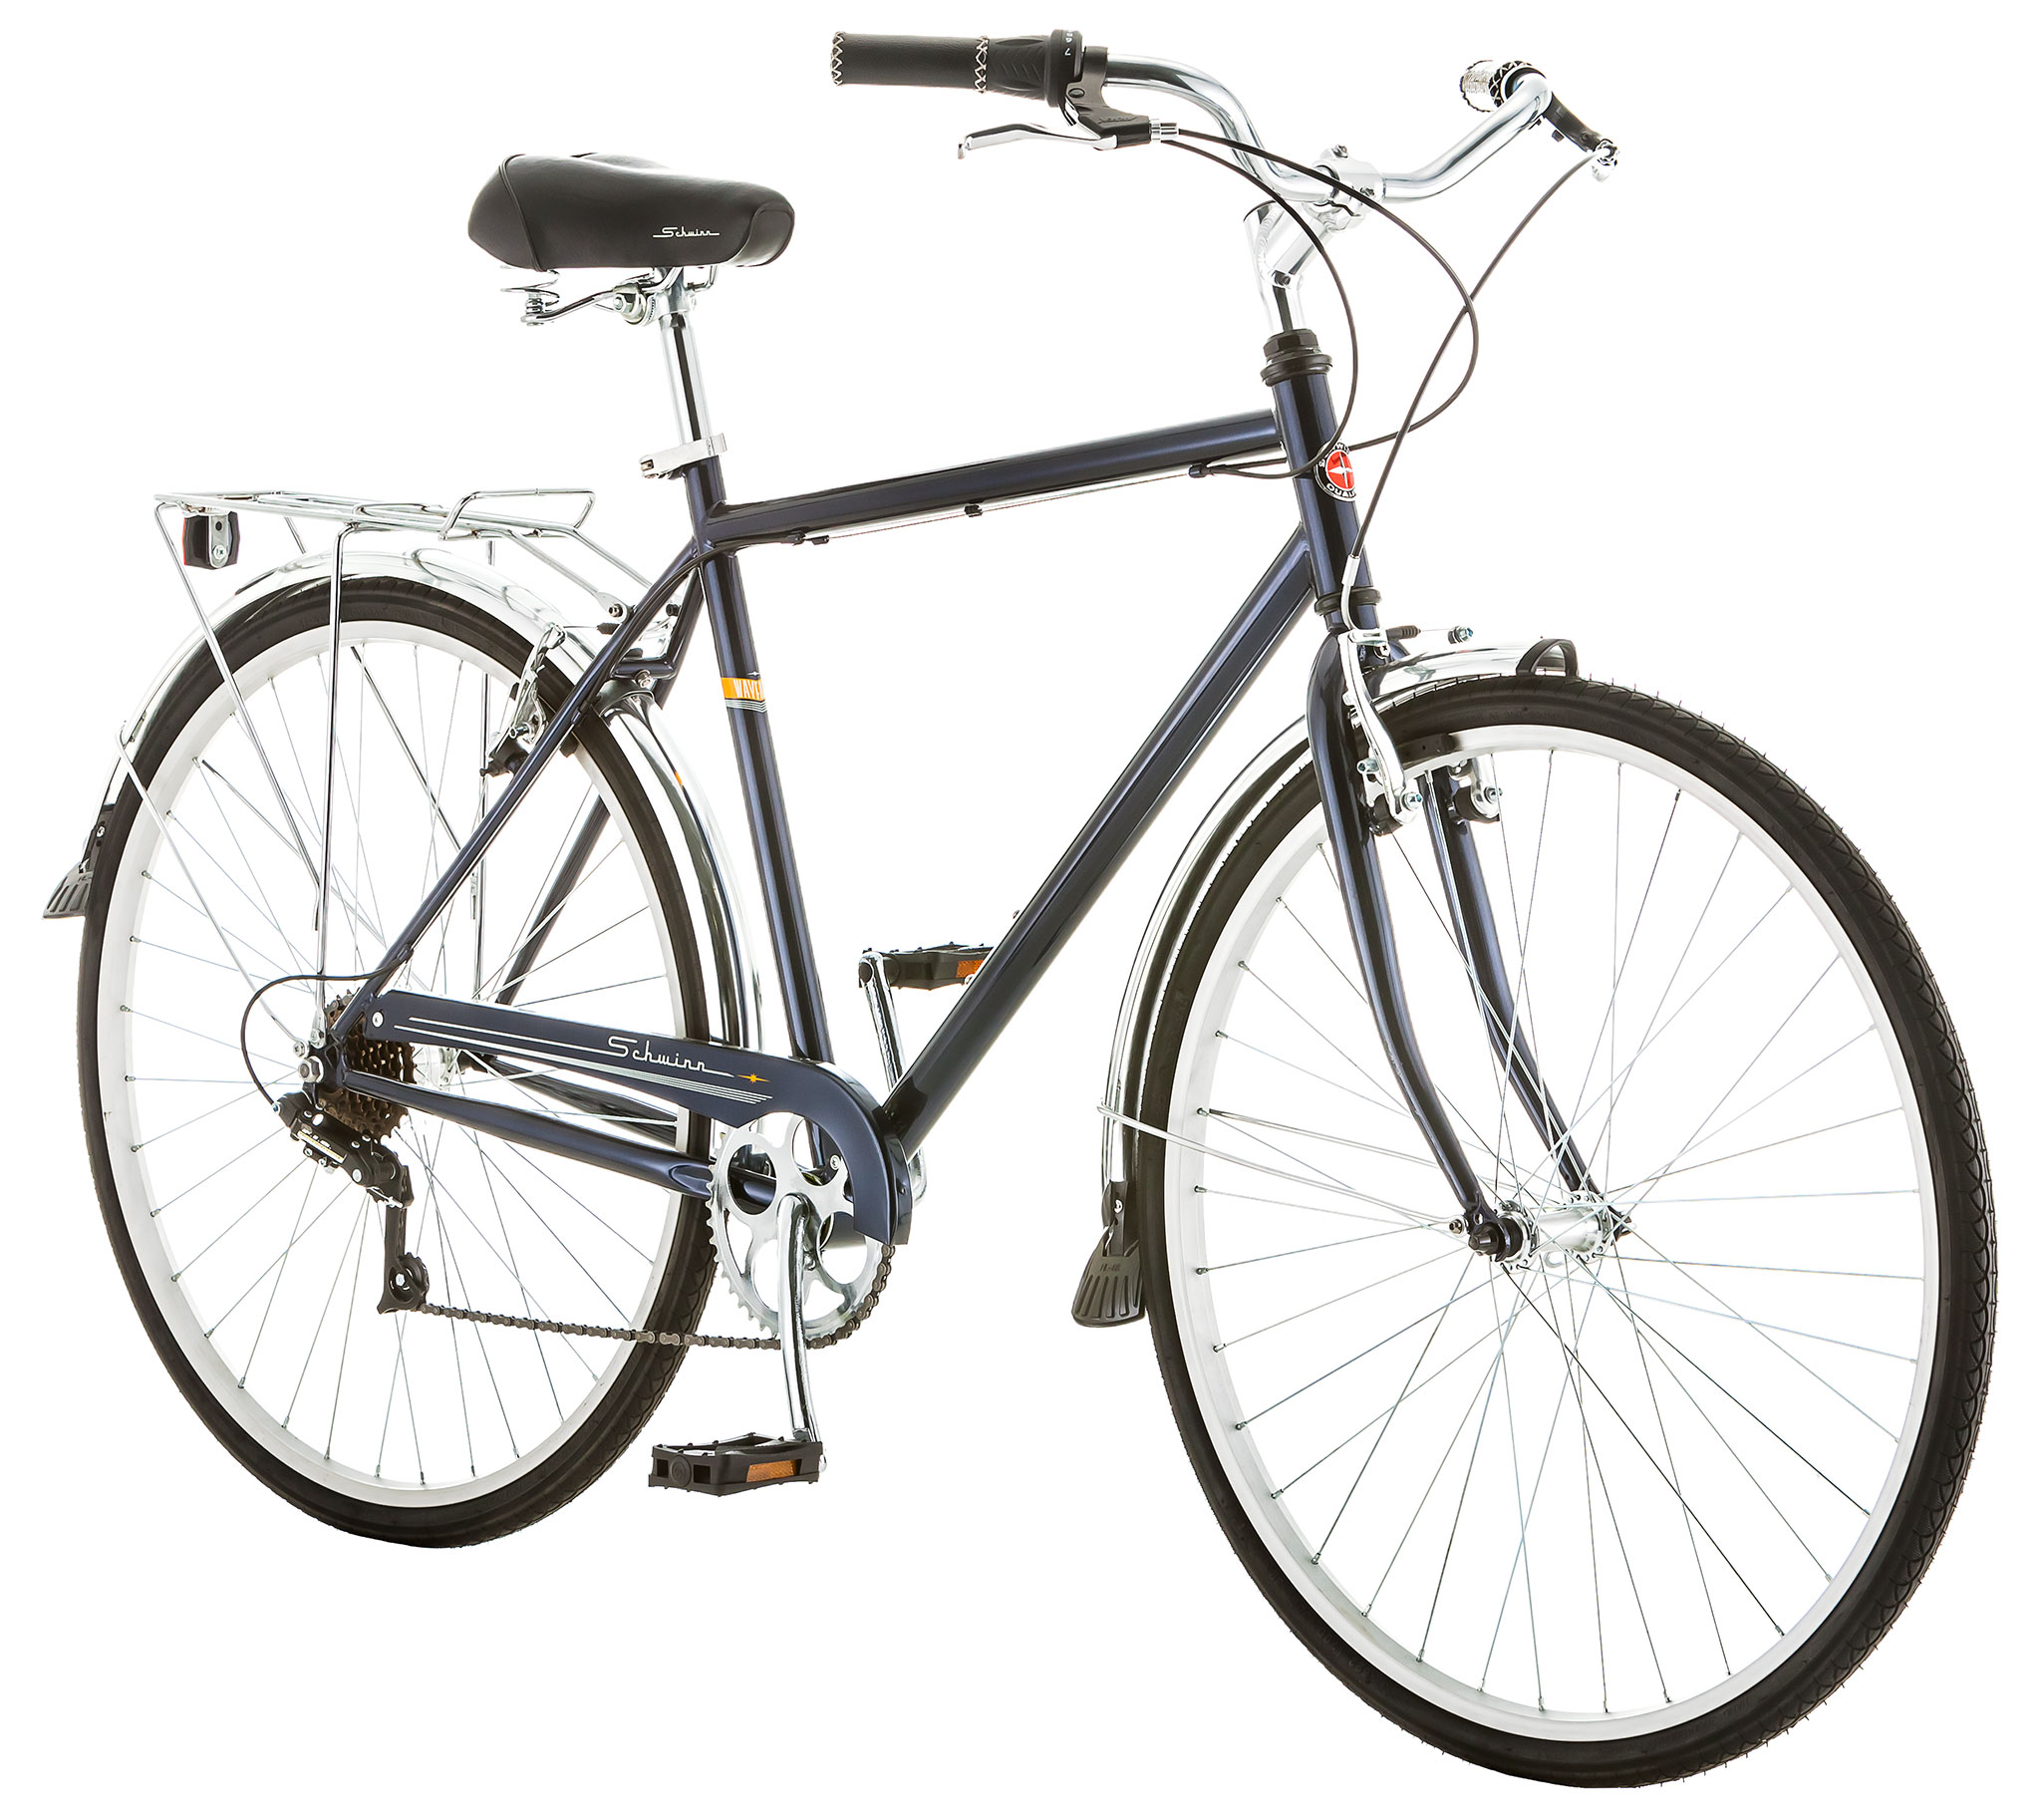 Schwinn Wayfarer Men's 7 Speed Retro Style City Bike Navy Blue